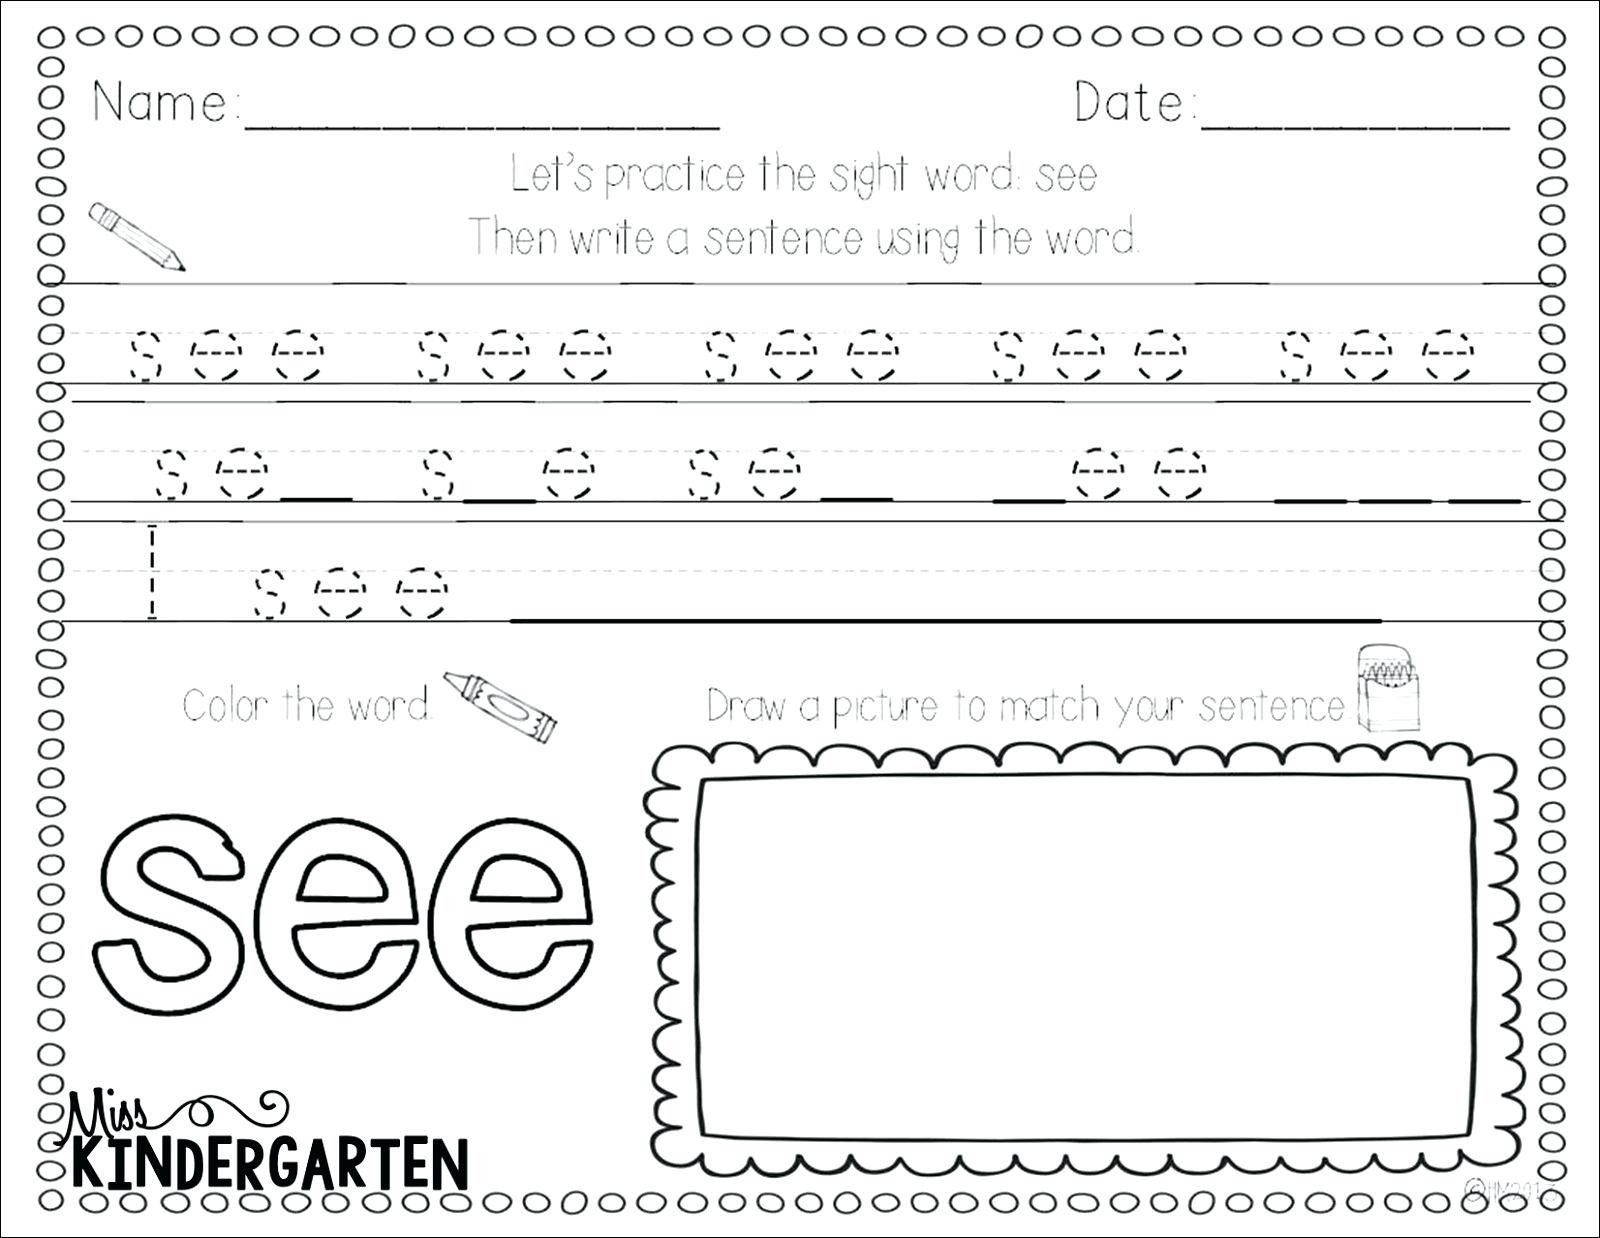 Free Preschool Kindergarten Worksheets Drawing Writing What Is The Book About Worksheet Works Sight Words Kindergarten Sight Word Practice Sight Words